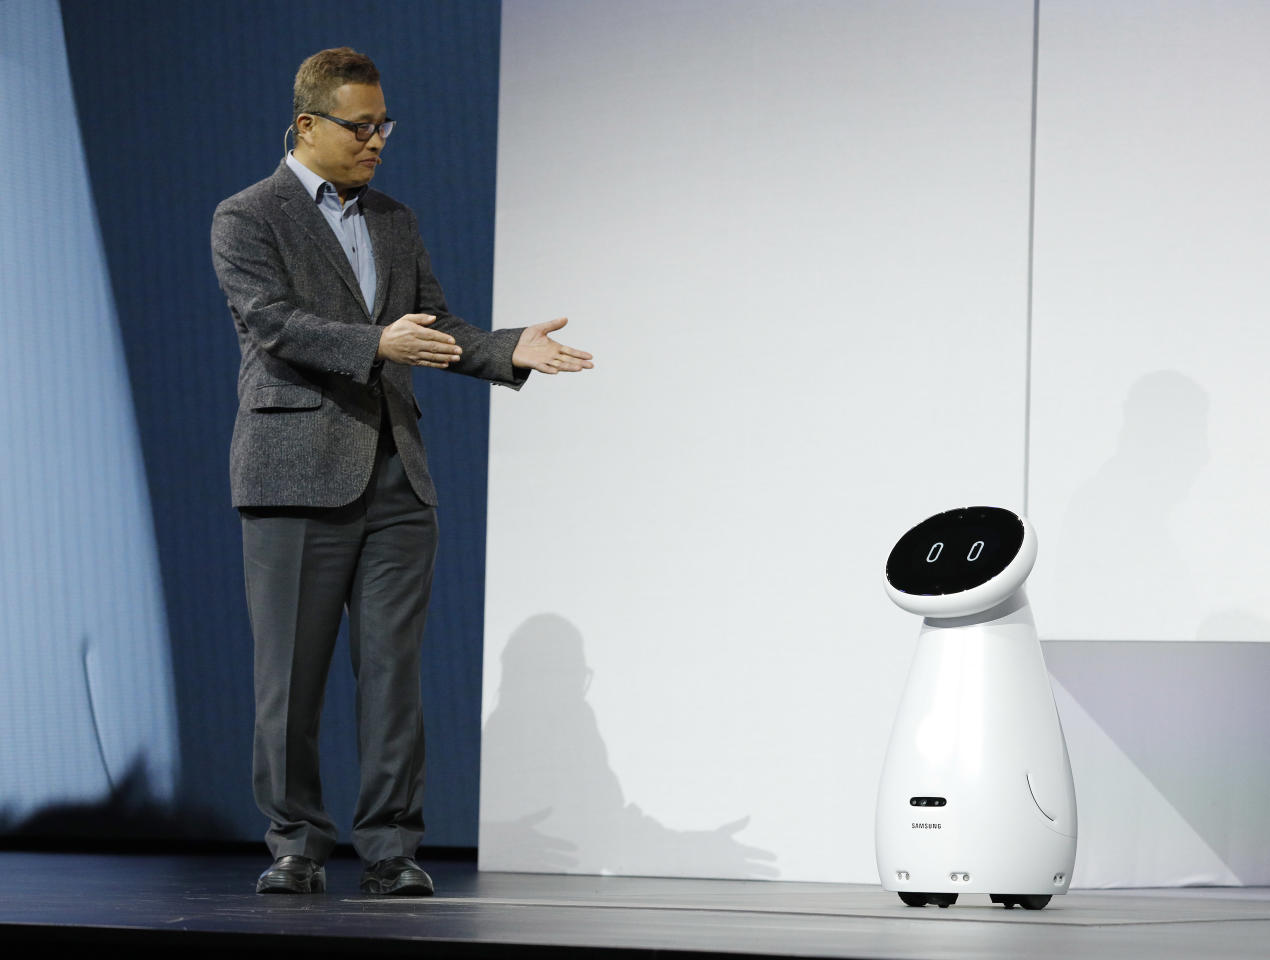 Gary Lee, senior vice president and head of the AI Center at Samsung Electronics, unveils the Bot Care robot during a Samsung news conference at CES International, Monday, Jan. 7, 2019, in Las Vegas. (AP Photo/John Locher)